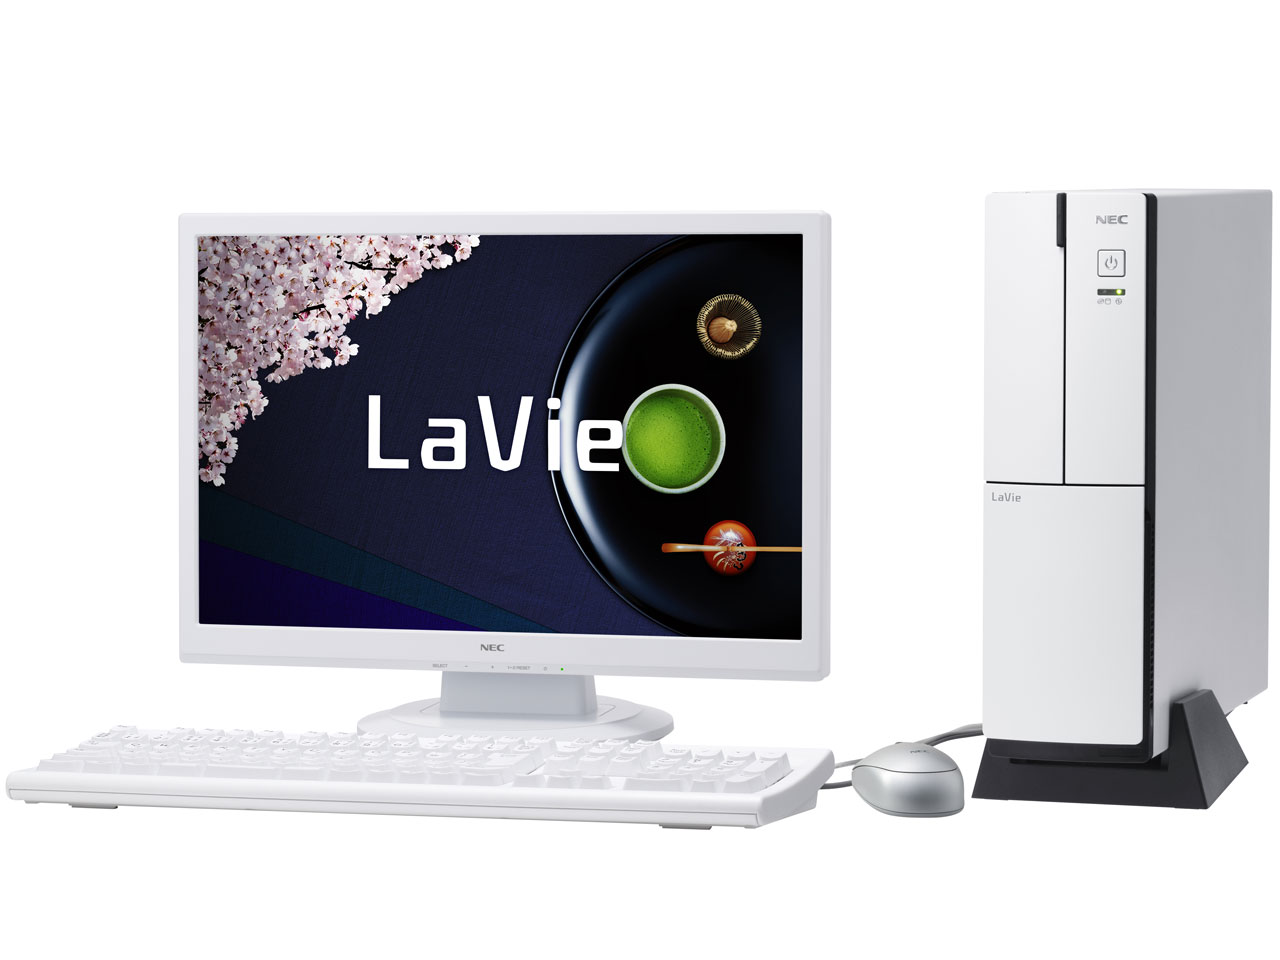 LaVie Desk Tower DT150/AAW PC-DT150AAW �̐��i�摜